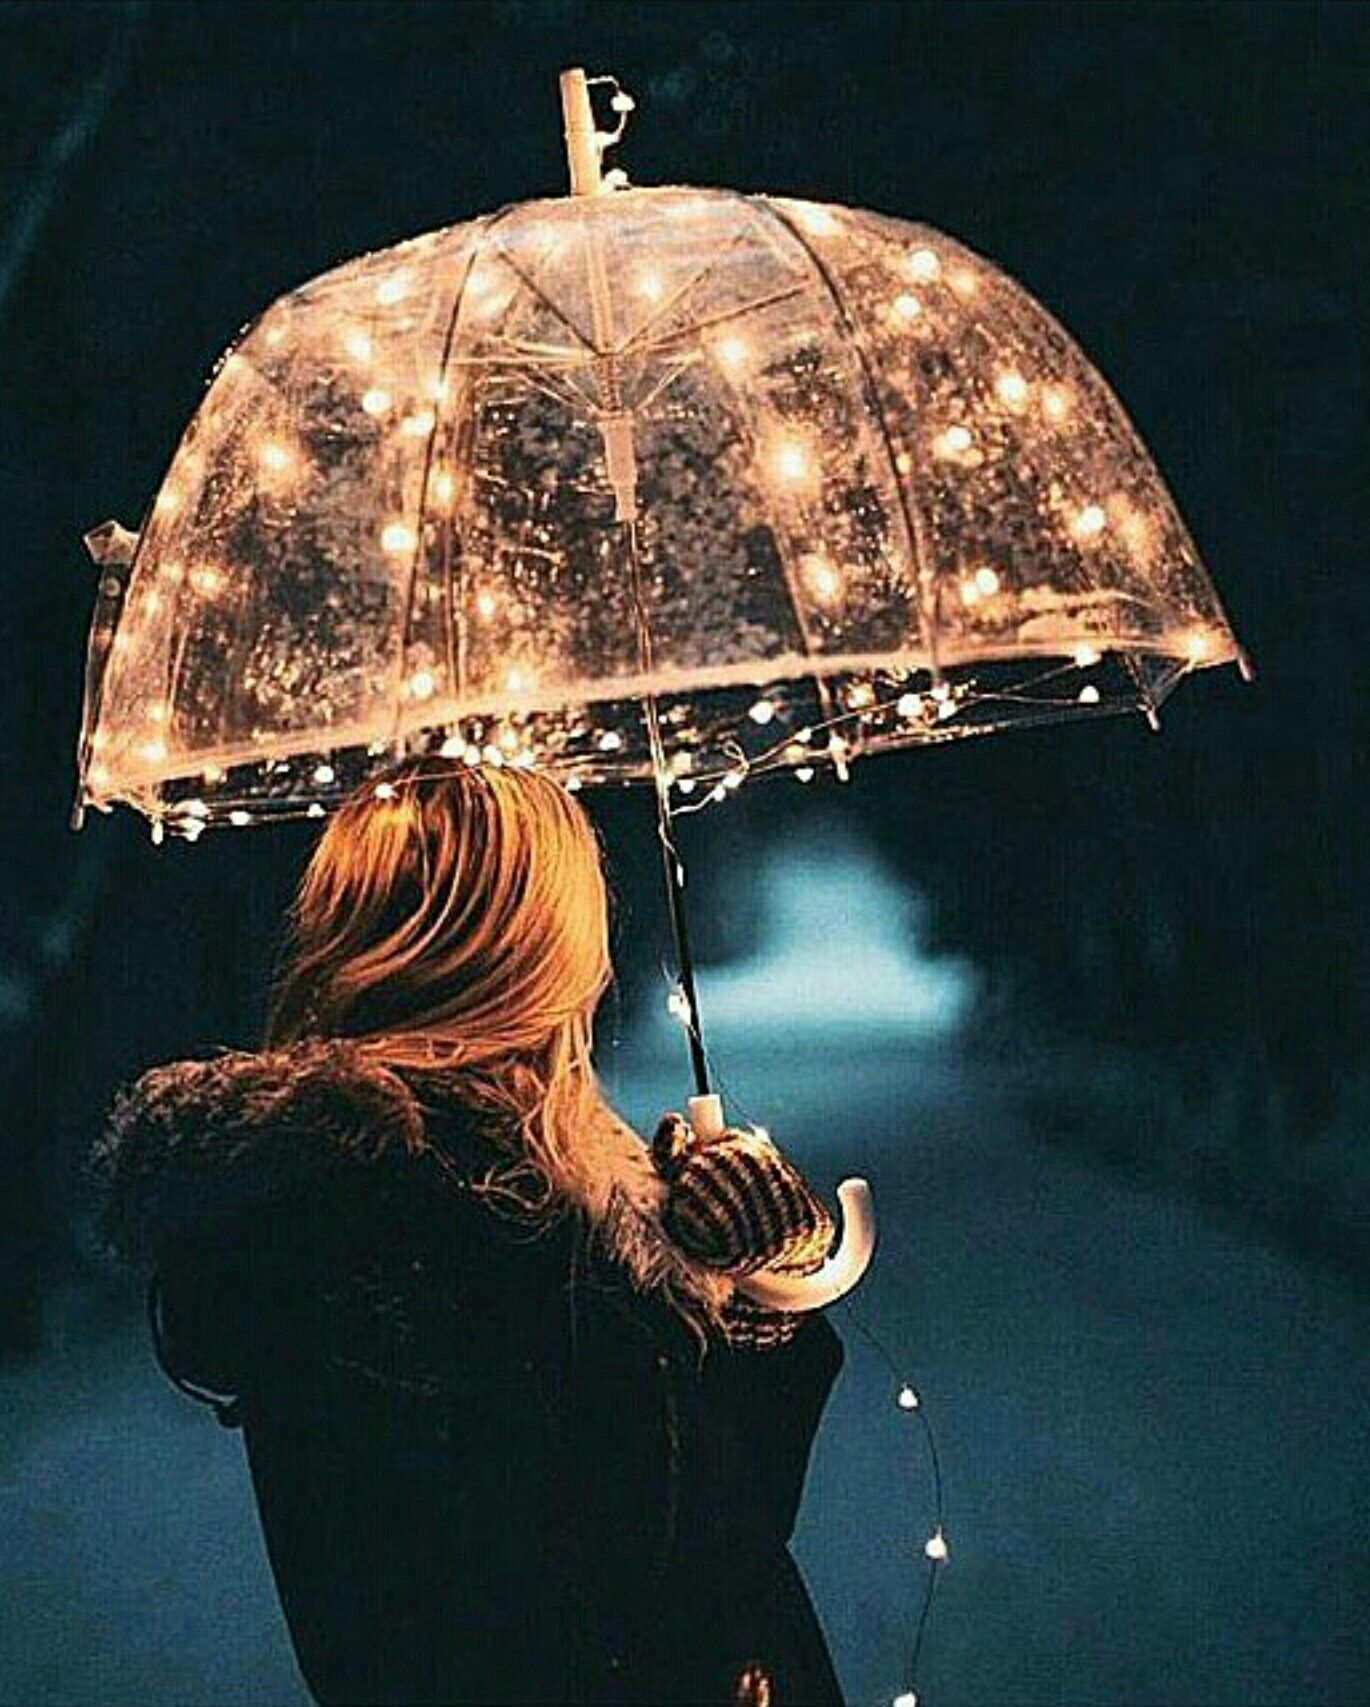 Pin by Juliana Parker on Girl | Pinterest for Umbrella Photography Tumblr  174mzq